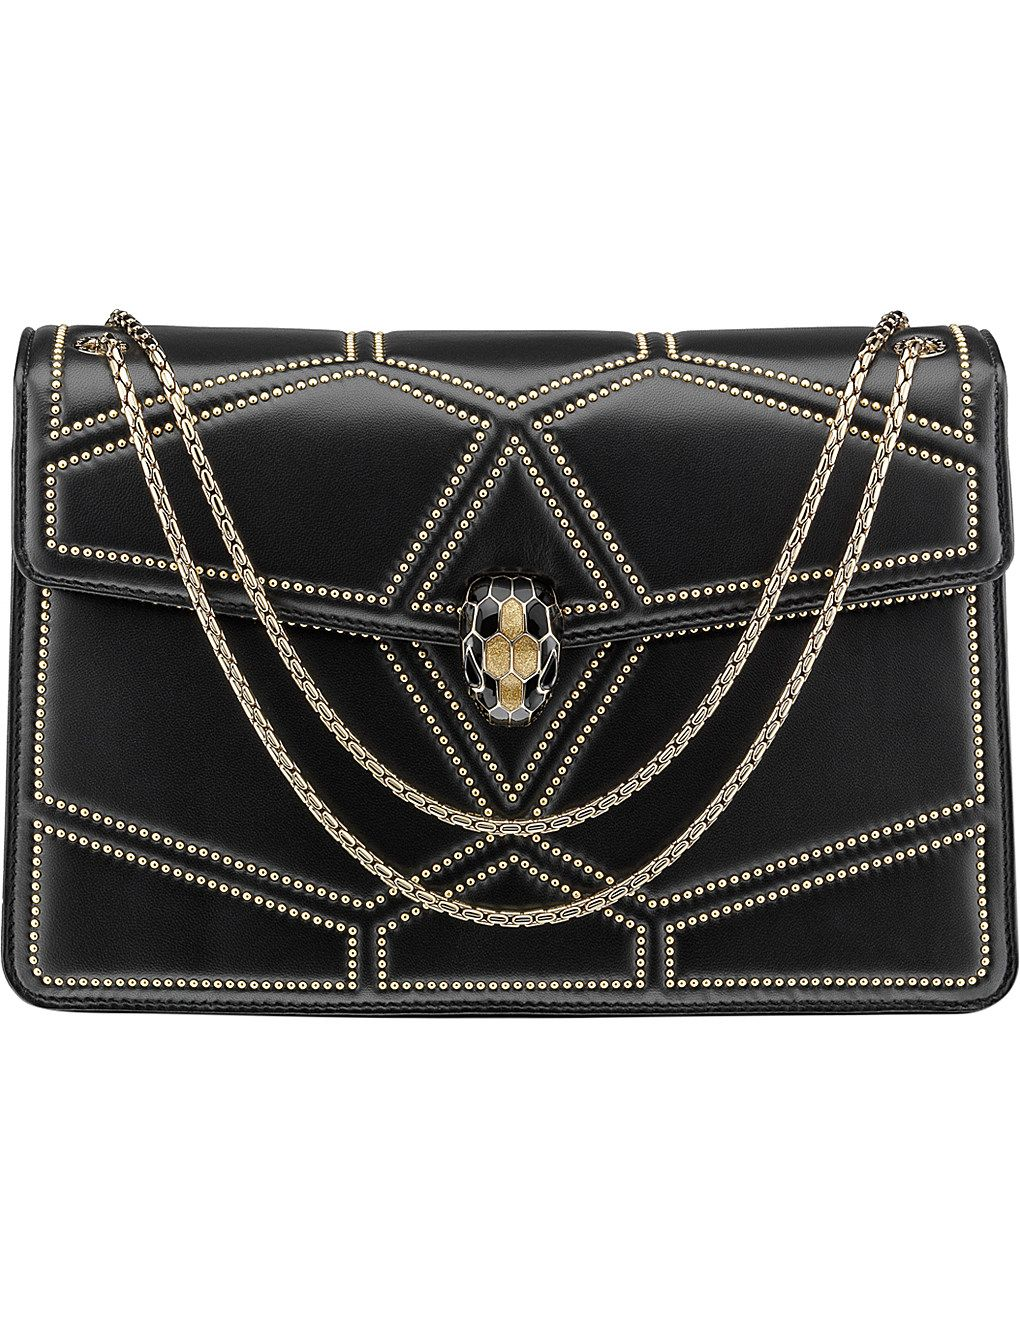 abe52d2d3dee BVLGARI Serpenti Forever studded leather shoulder bag in 2019 ...